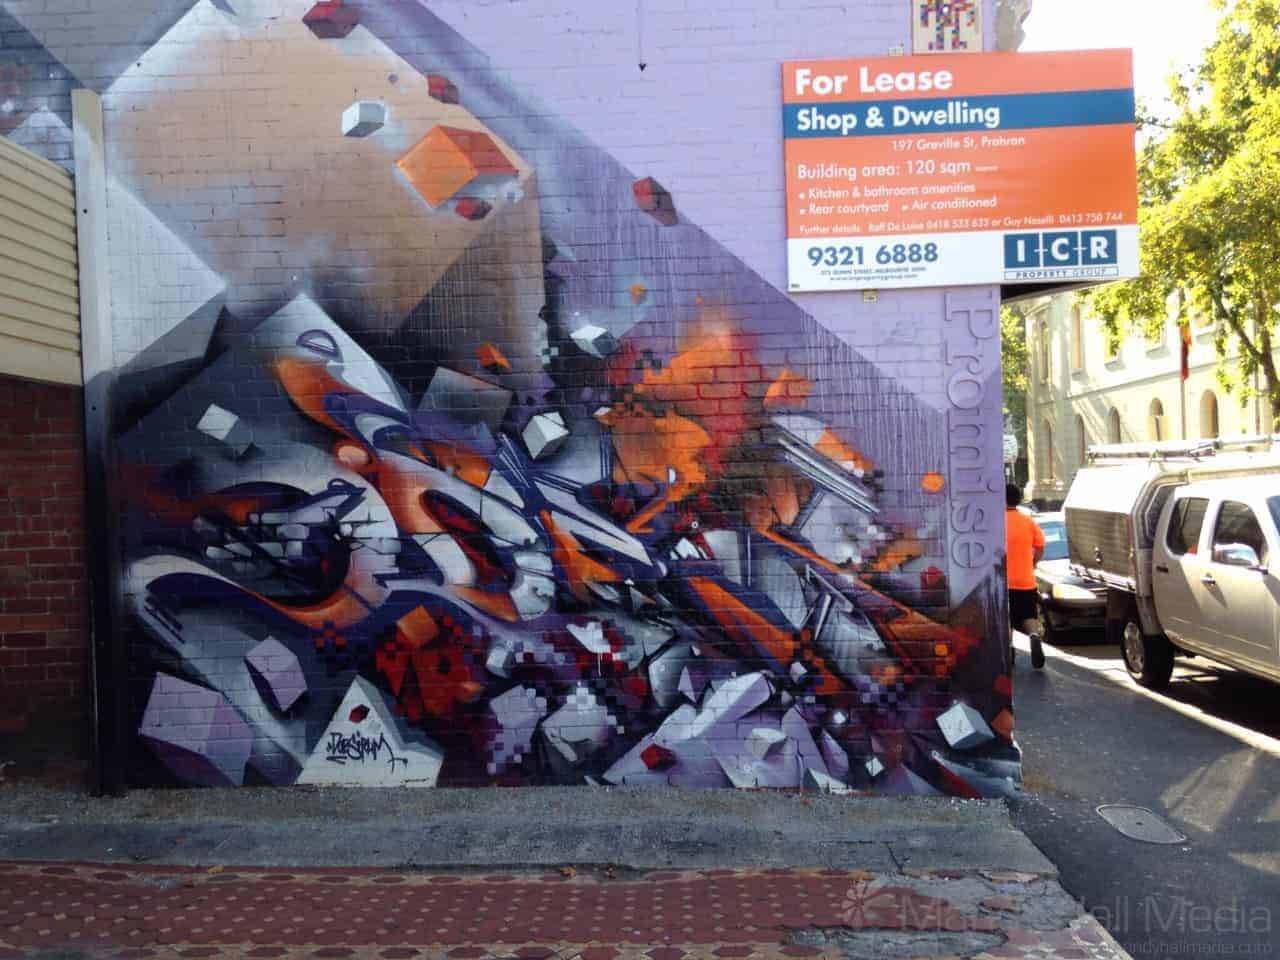 Street art in Greville st, Prahran with matching delivery man.